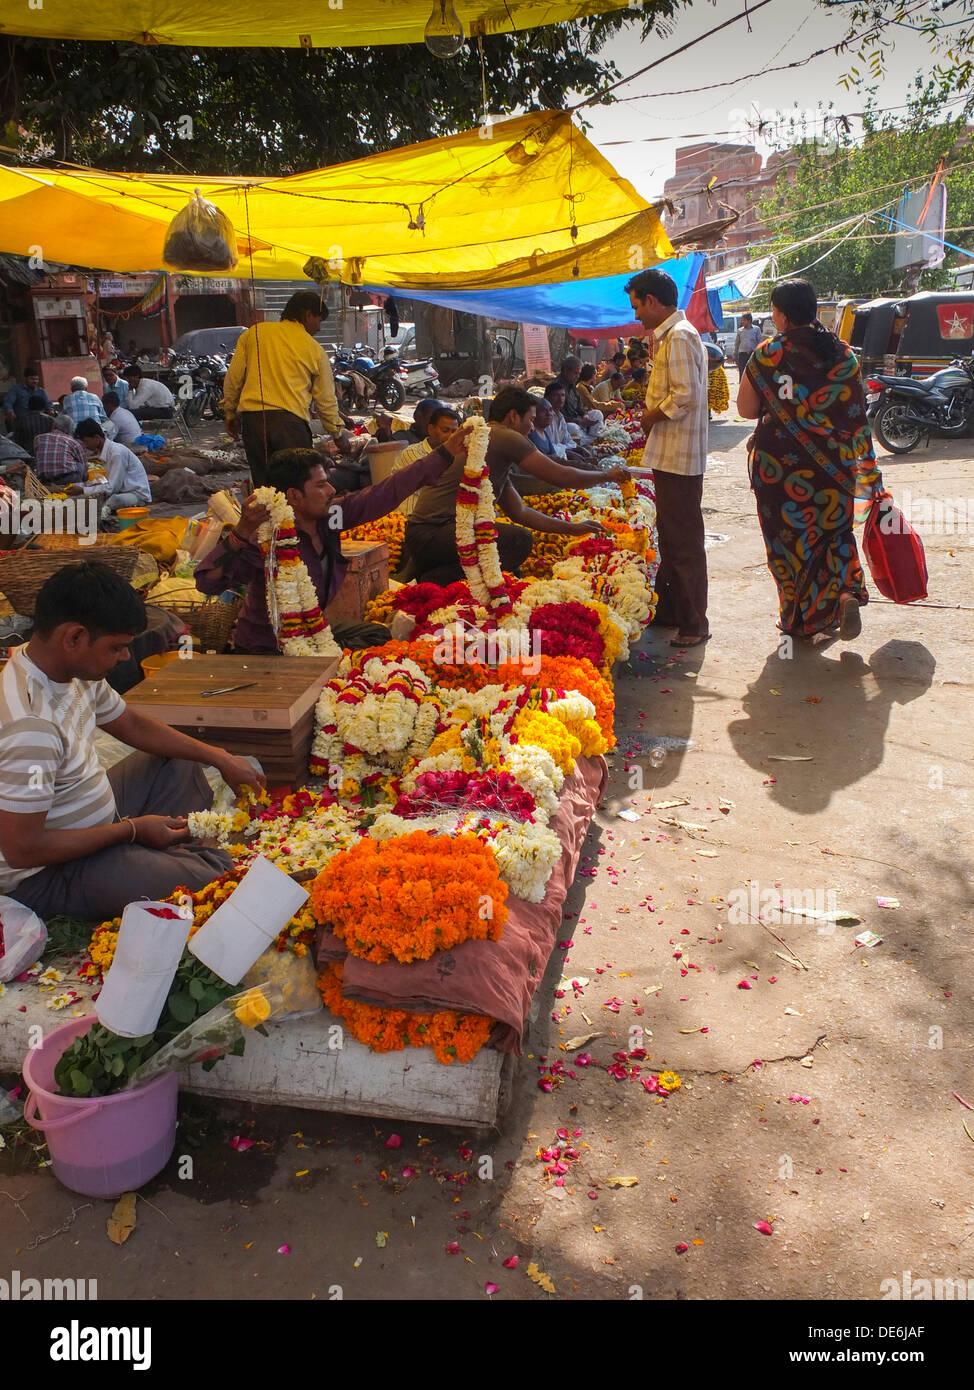 India, Rajasthan, Jaipur, flower stalls selling marigold garlands - Stock Image